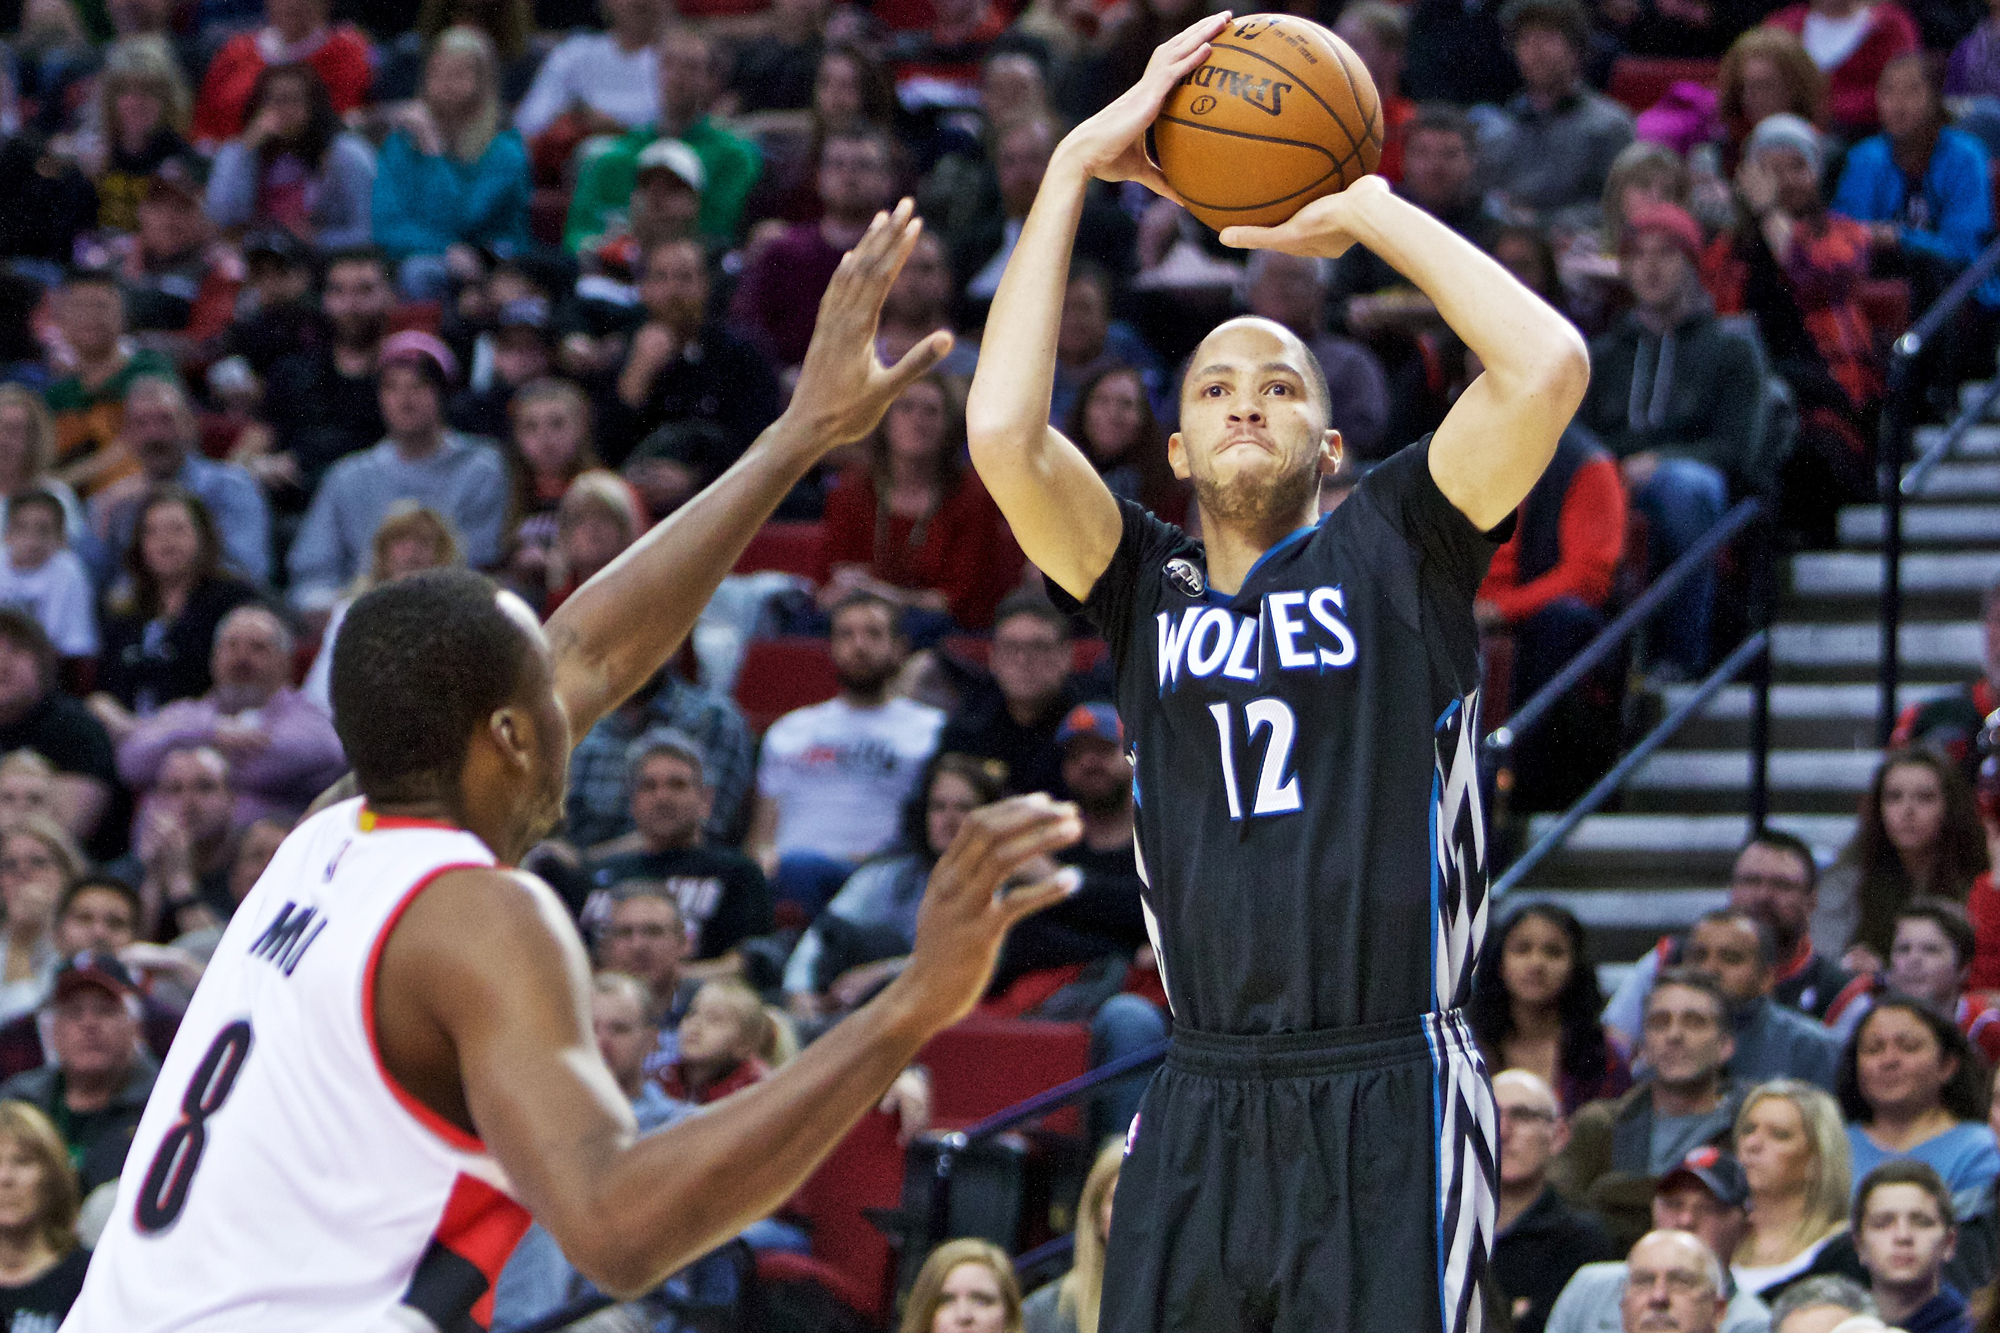 Minnesota Timberwolves forward Tayshaun Prince, right, shoots over Portland Trail Blazers forward Al-Farouq Aminu, left, during the first half of an NBA basketball game in Portland, Ore., Sunday, Jan. 31, 2016.